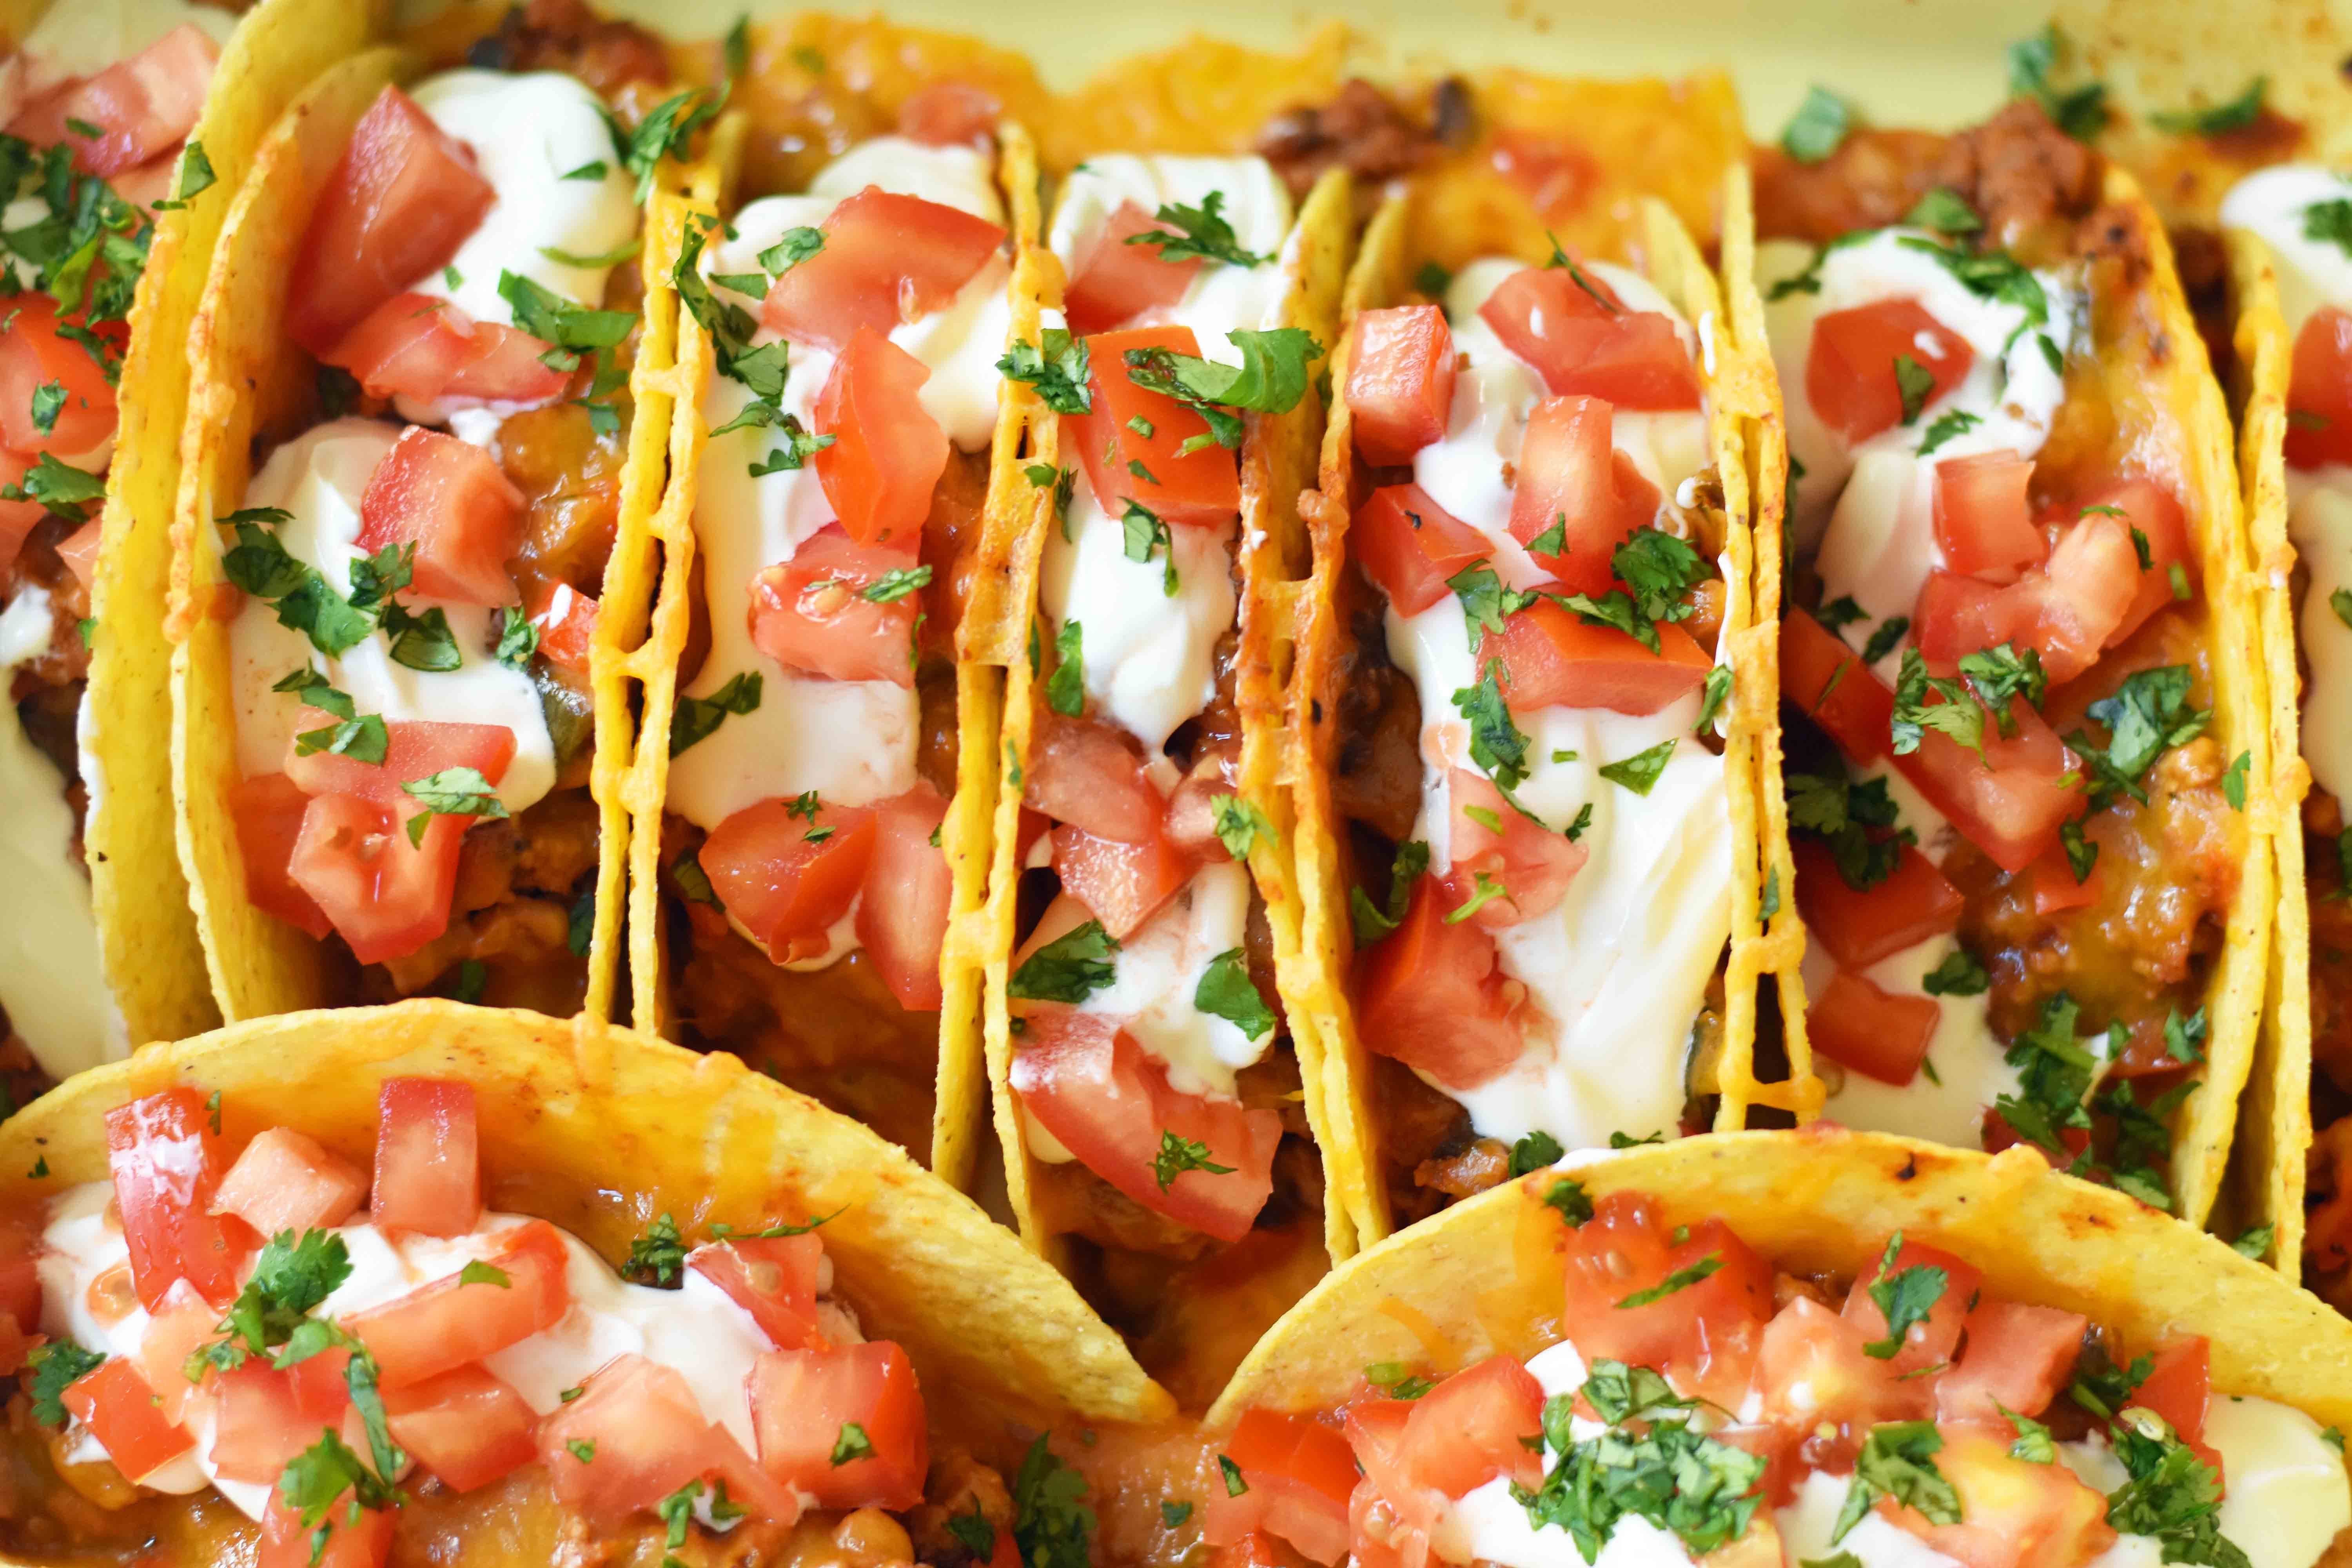 Easy Oven Baked Beef Tacos. Perfectly seasoned ground beef tacos and Mexican cheese baked in taco shells until melted. Topped with sour cream, guacamole, salsa, diced tomatoes, and hot sauce. These are party tacos and a family favorite dinner. www.modernhoney.com